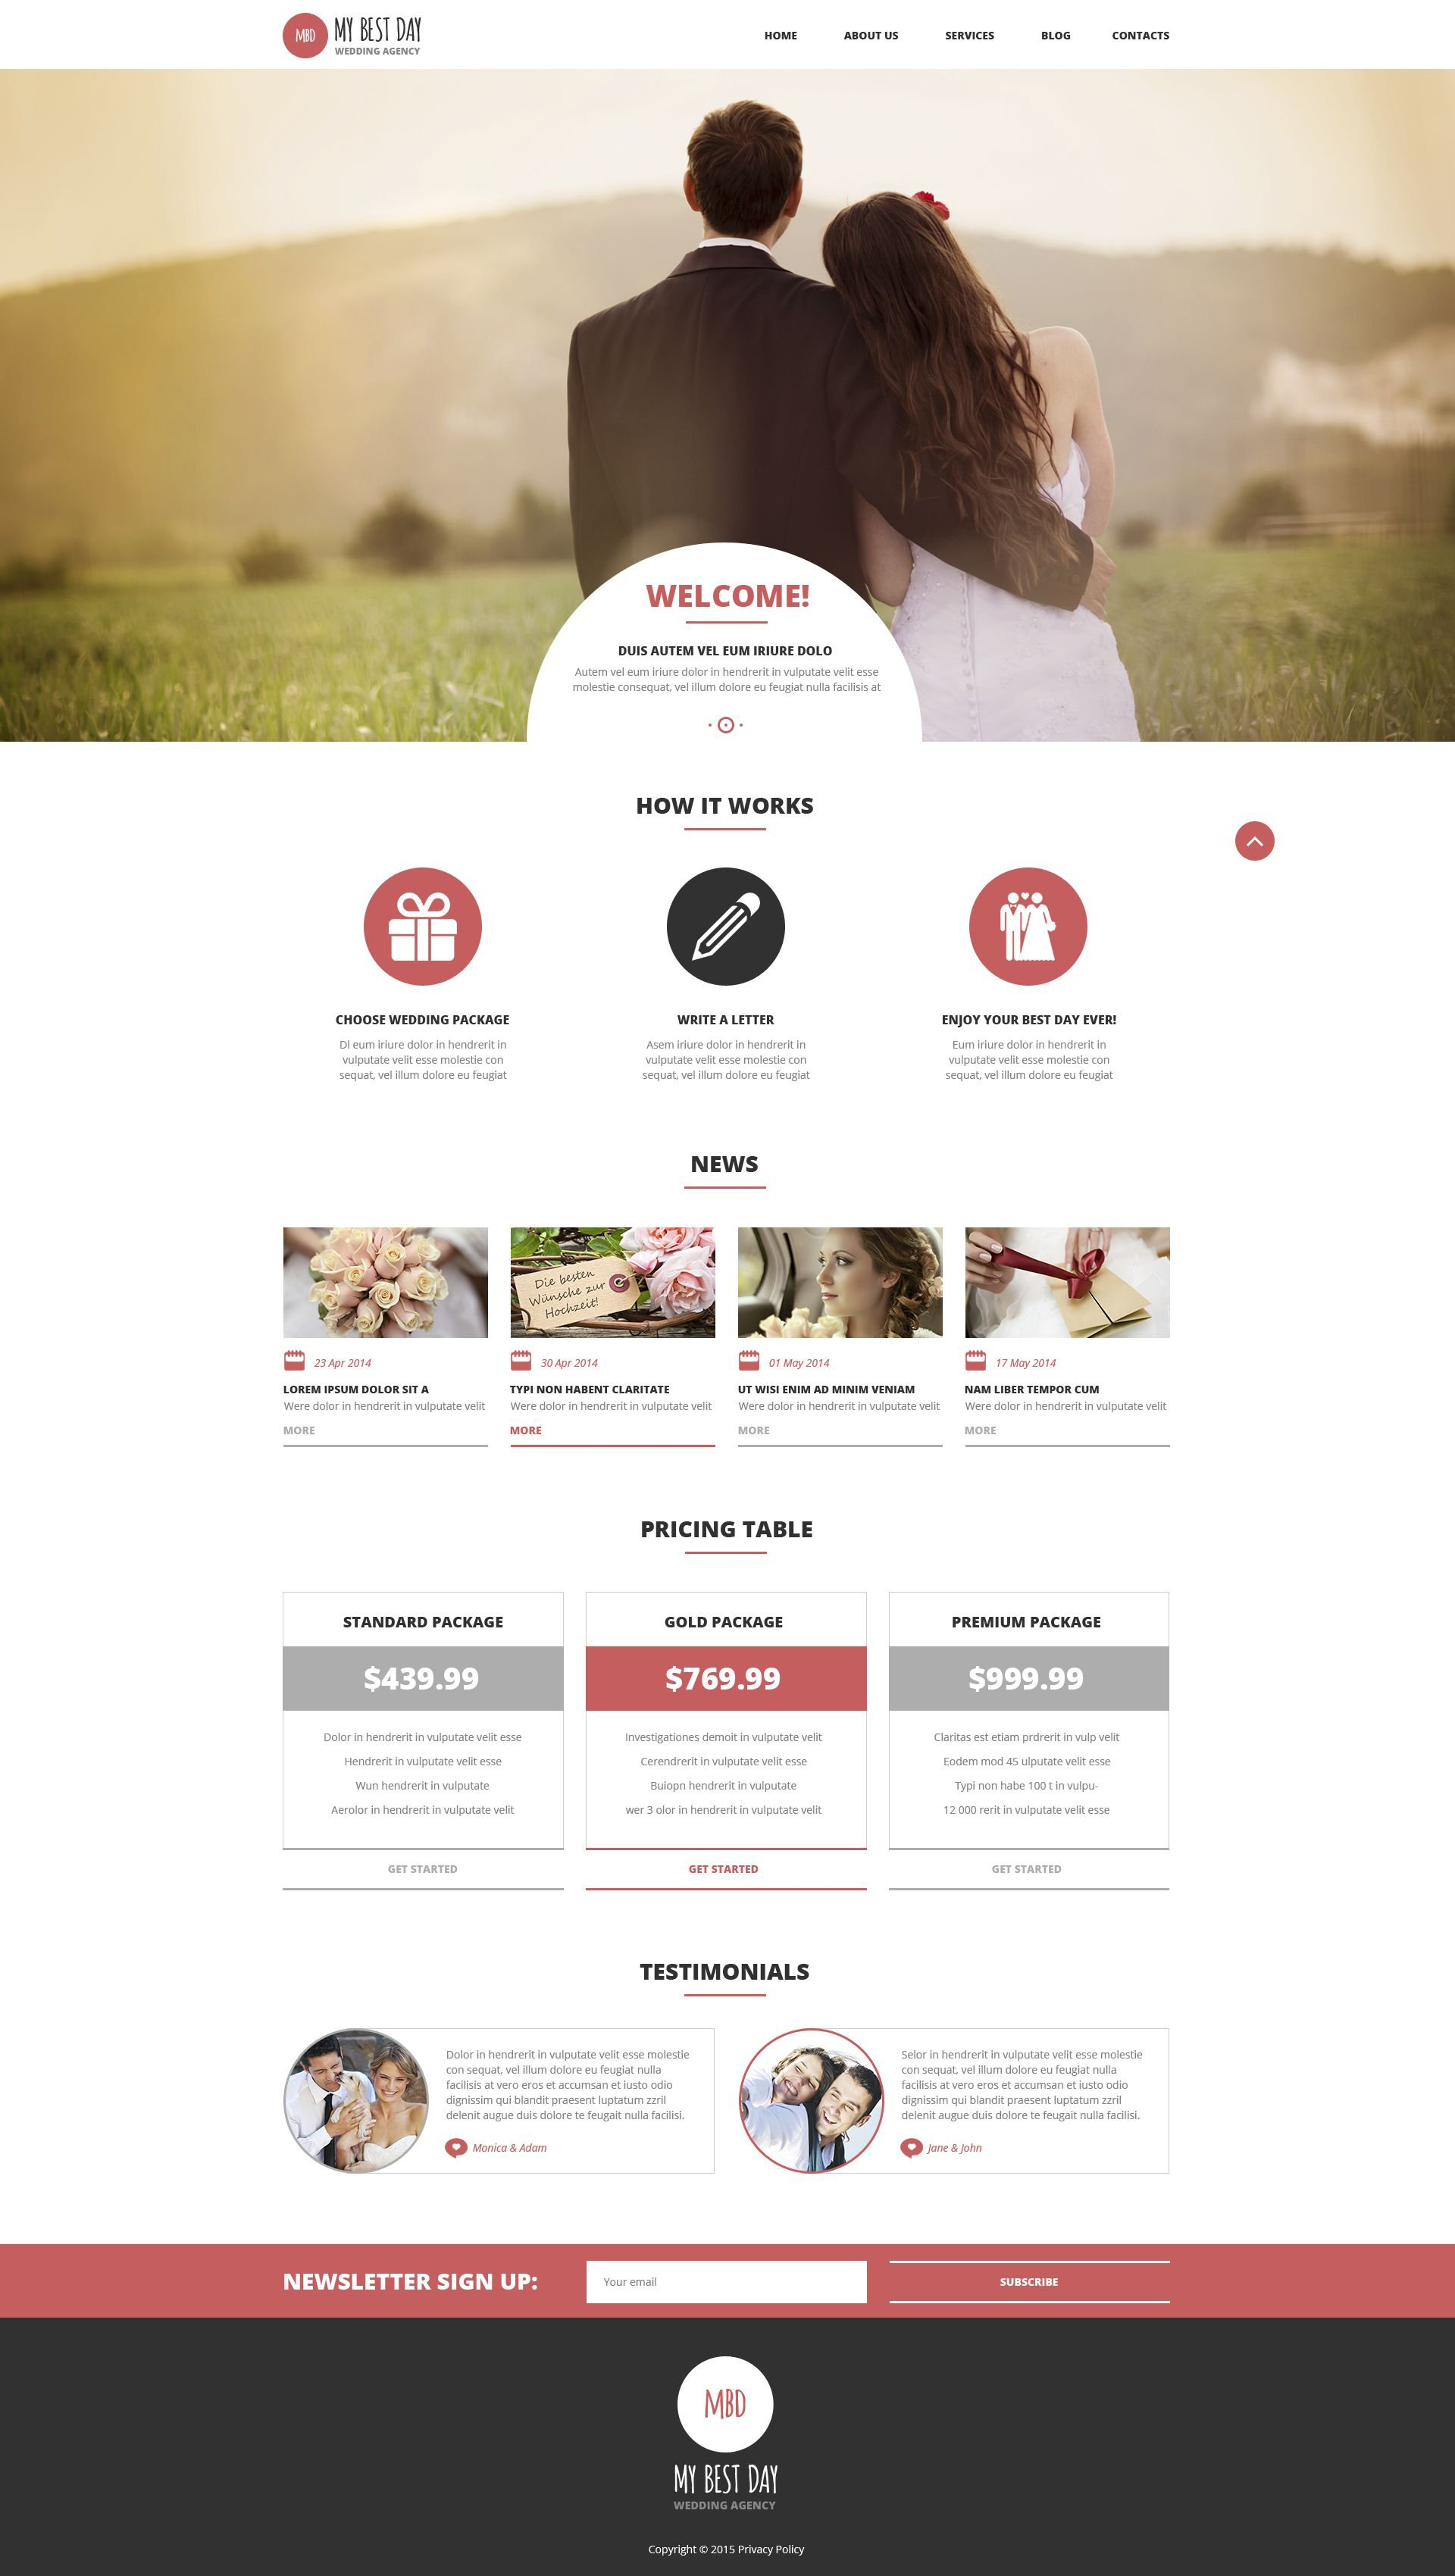 The My Best Day WordPress Design 53015, one of the best WordPress themes of its kind (wedding, most popular), also known as my best day WordPress template, wedding agency online store WordPress template, reception WordPress template, bridal WordPress template, ceremony WordPress template, gifts WordPress template, jewel WordPress template, specials WordPress template, offers WordPress template, rings WordPress template, flowers WordPress template, bouquet designers WordPress template, candles WordPress template, glasses WordPress template, decoration WordPress template, style WordPress template, accessories WordPress template, crown WordPress template, tiara WordPress template, gown WordPress template, veil WordPress template, dress WordPress template, collection WordPress template, couple WordPress template, fiancee WordPress template, marriage WordPress template, bridegroom WordPress template, husband WordPress template, wife WordPress template, match and related with my best day, wedding agency online store, reception, bridal, ceremony, gifts, jewel, specials, offers, rings, flowers, bouquet designers, candles, glasses, decoration, style, accessories, crown, tiara, gown, veil, dress, collection, couple, fiancee, marriage, bridegroom, husband, wife, match, etc.